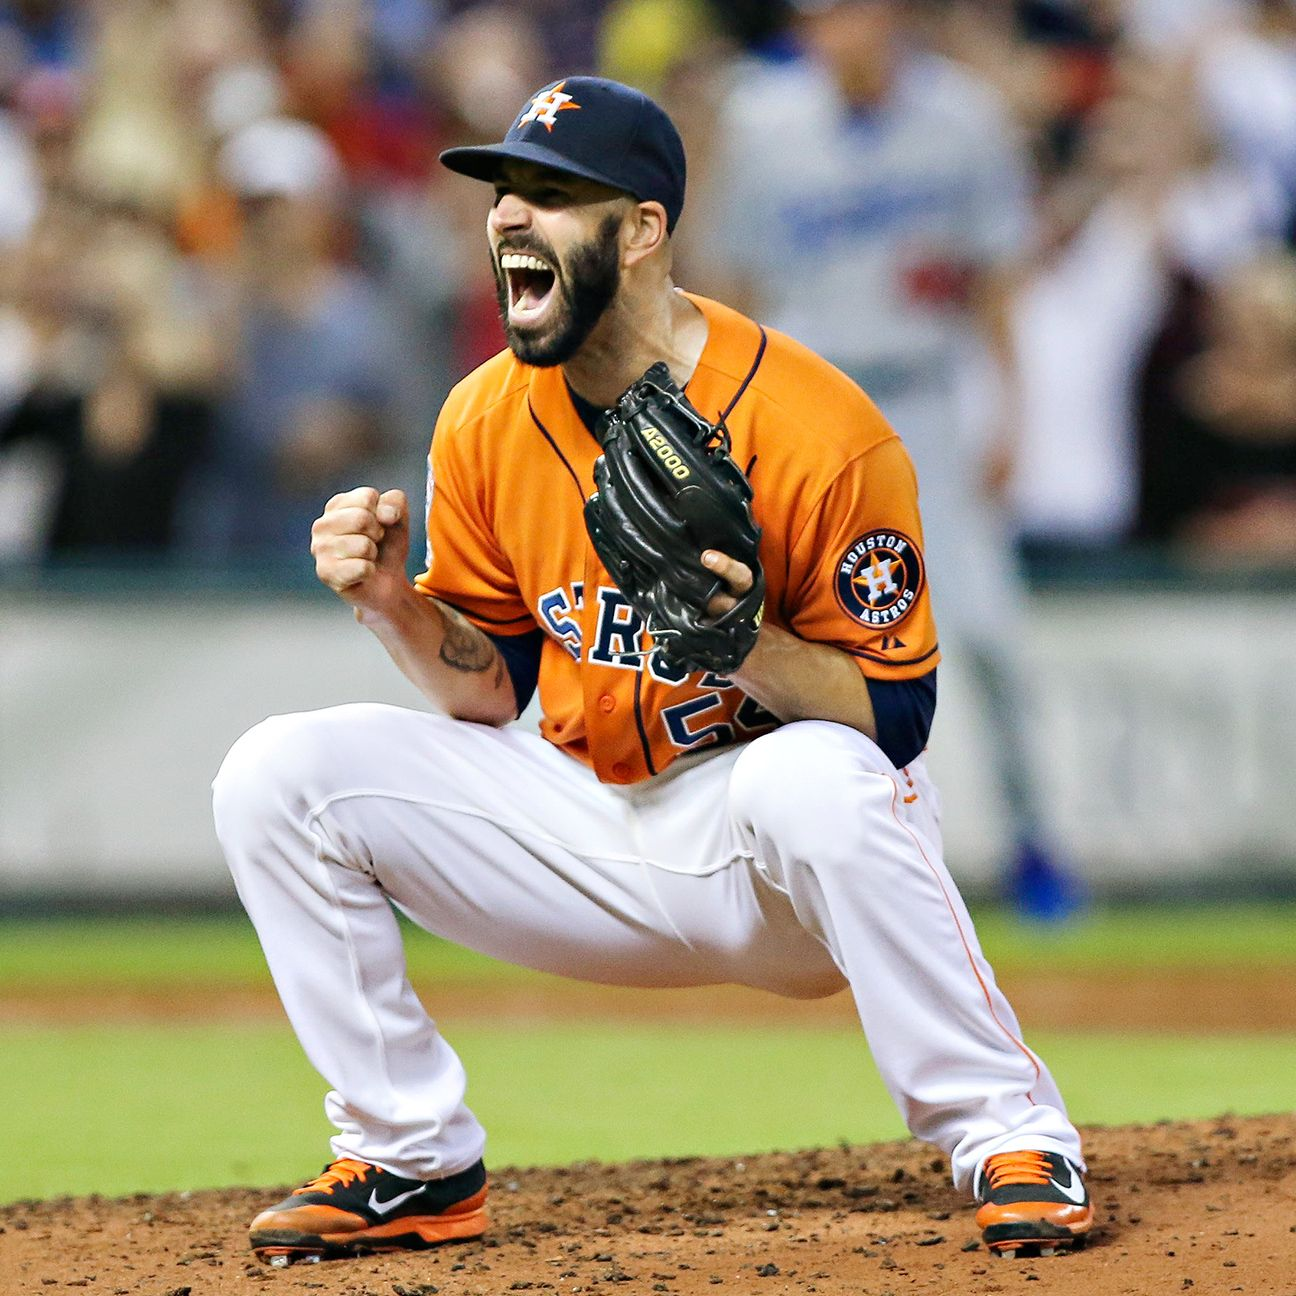 Mike Fiers Of Houston Astros Denies Illegal Substance On